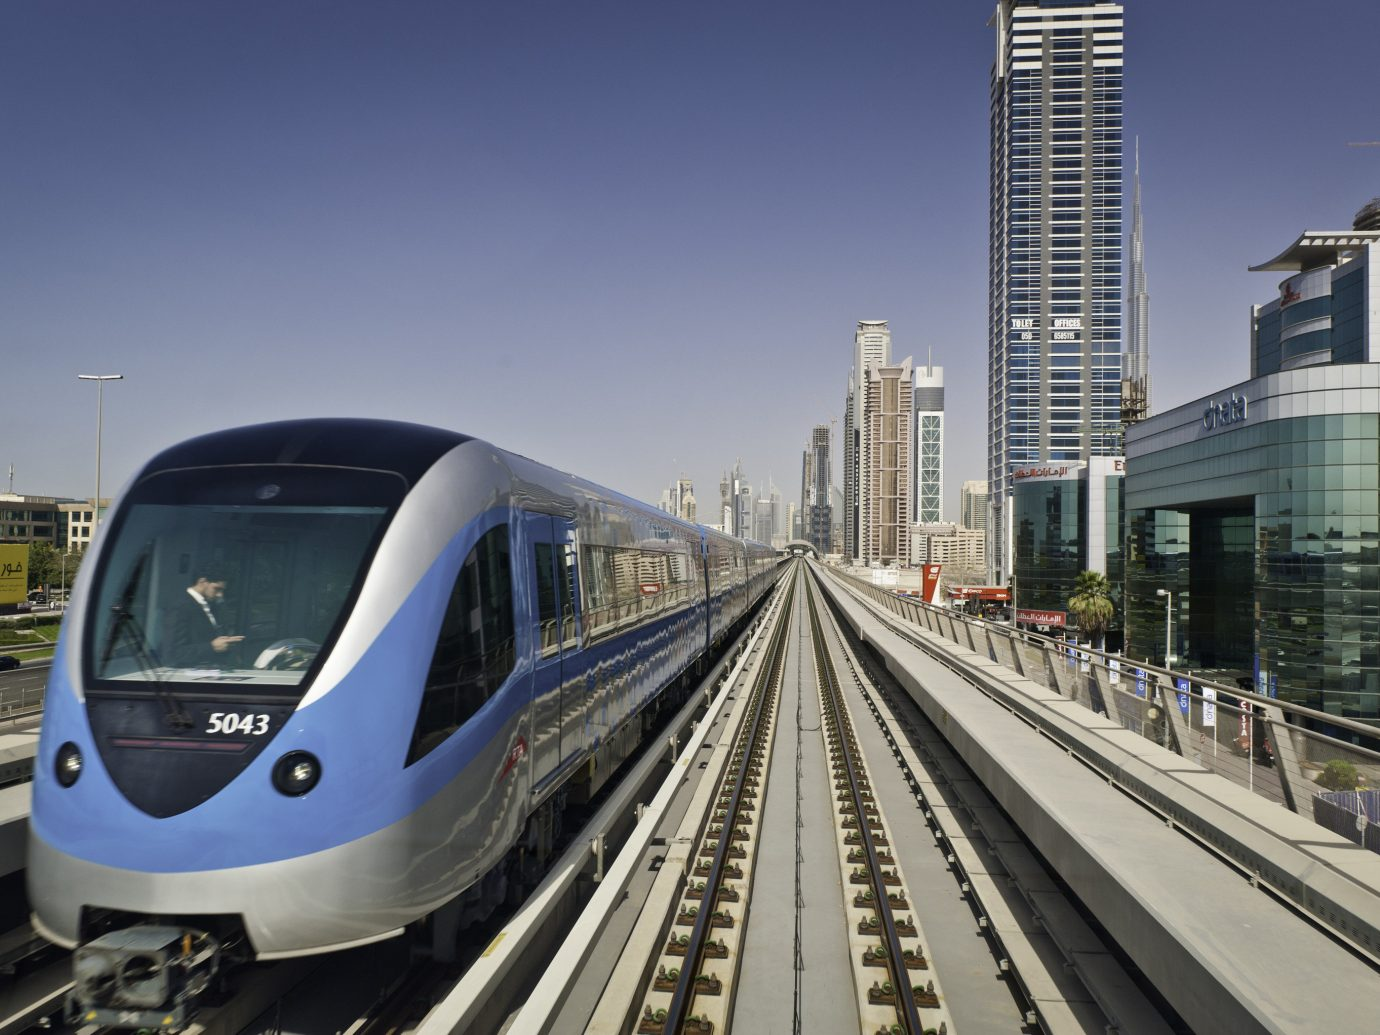 Travel Tips sky train outdoor track metropolitan area transport vehicle public transport land vehicle high speed rail rail transport platform maglev monorail rolling stock bullet train rapid transit passenger train station traveling subway